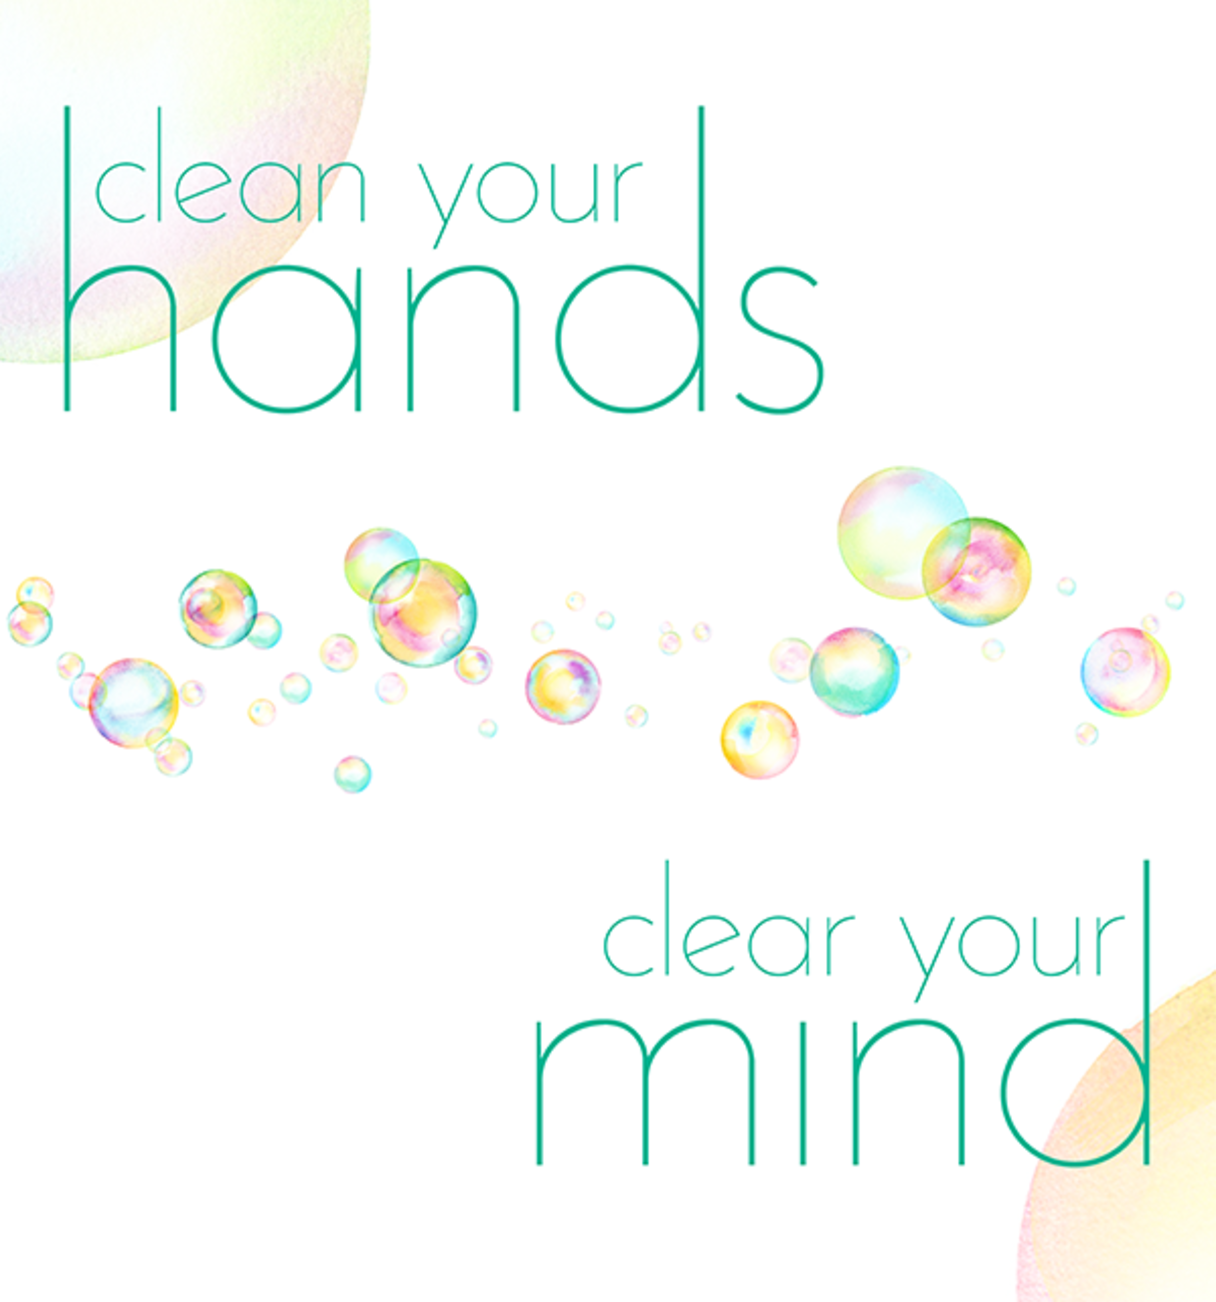 Clean your hands, clear your mind